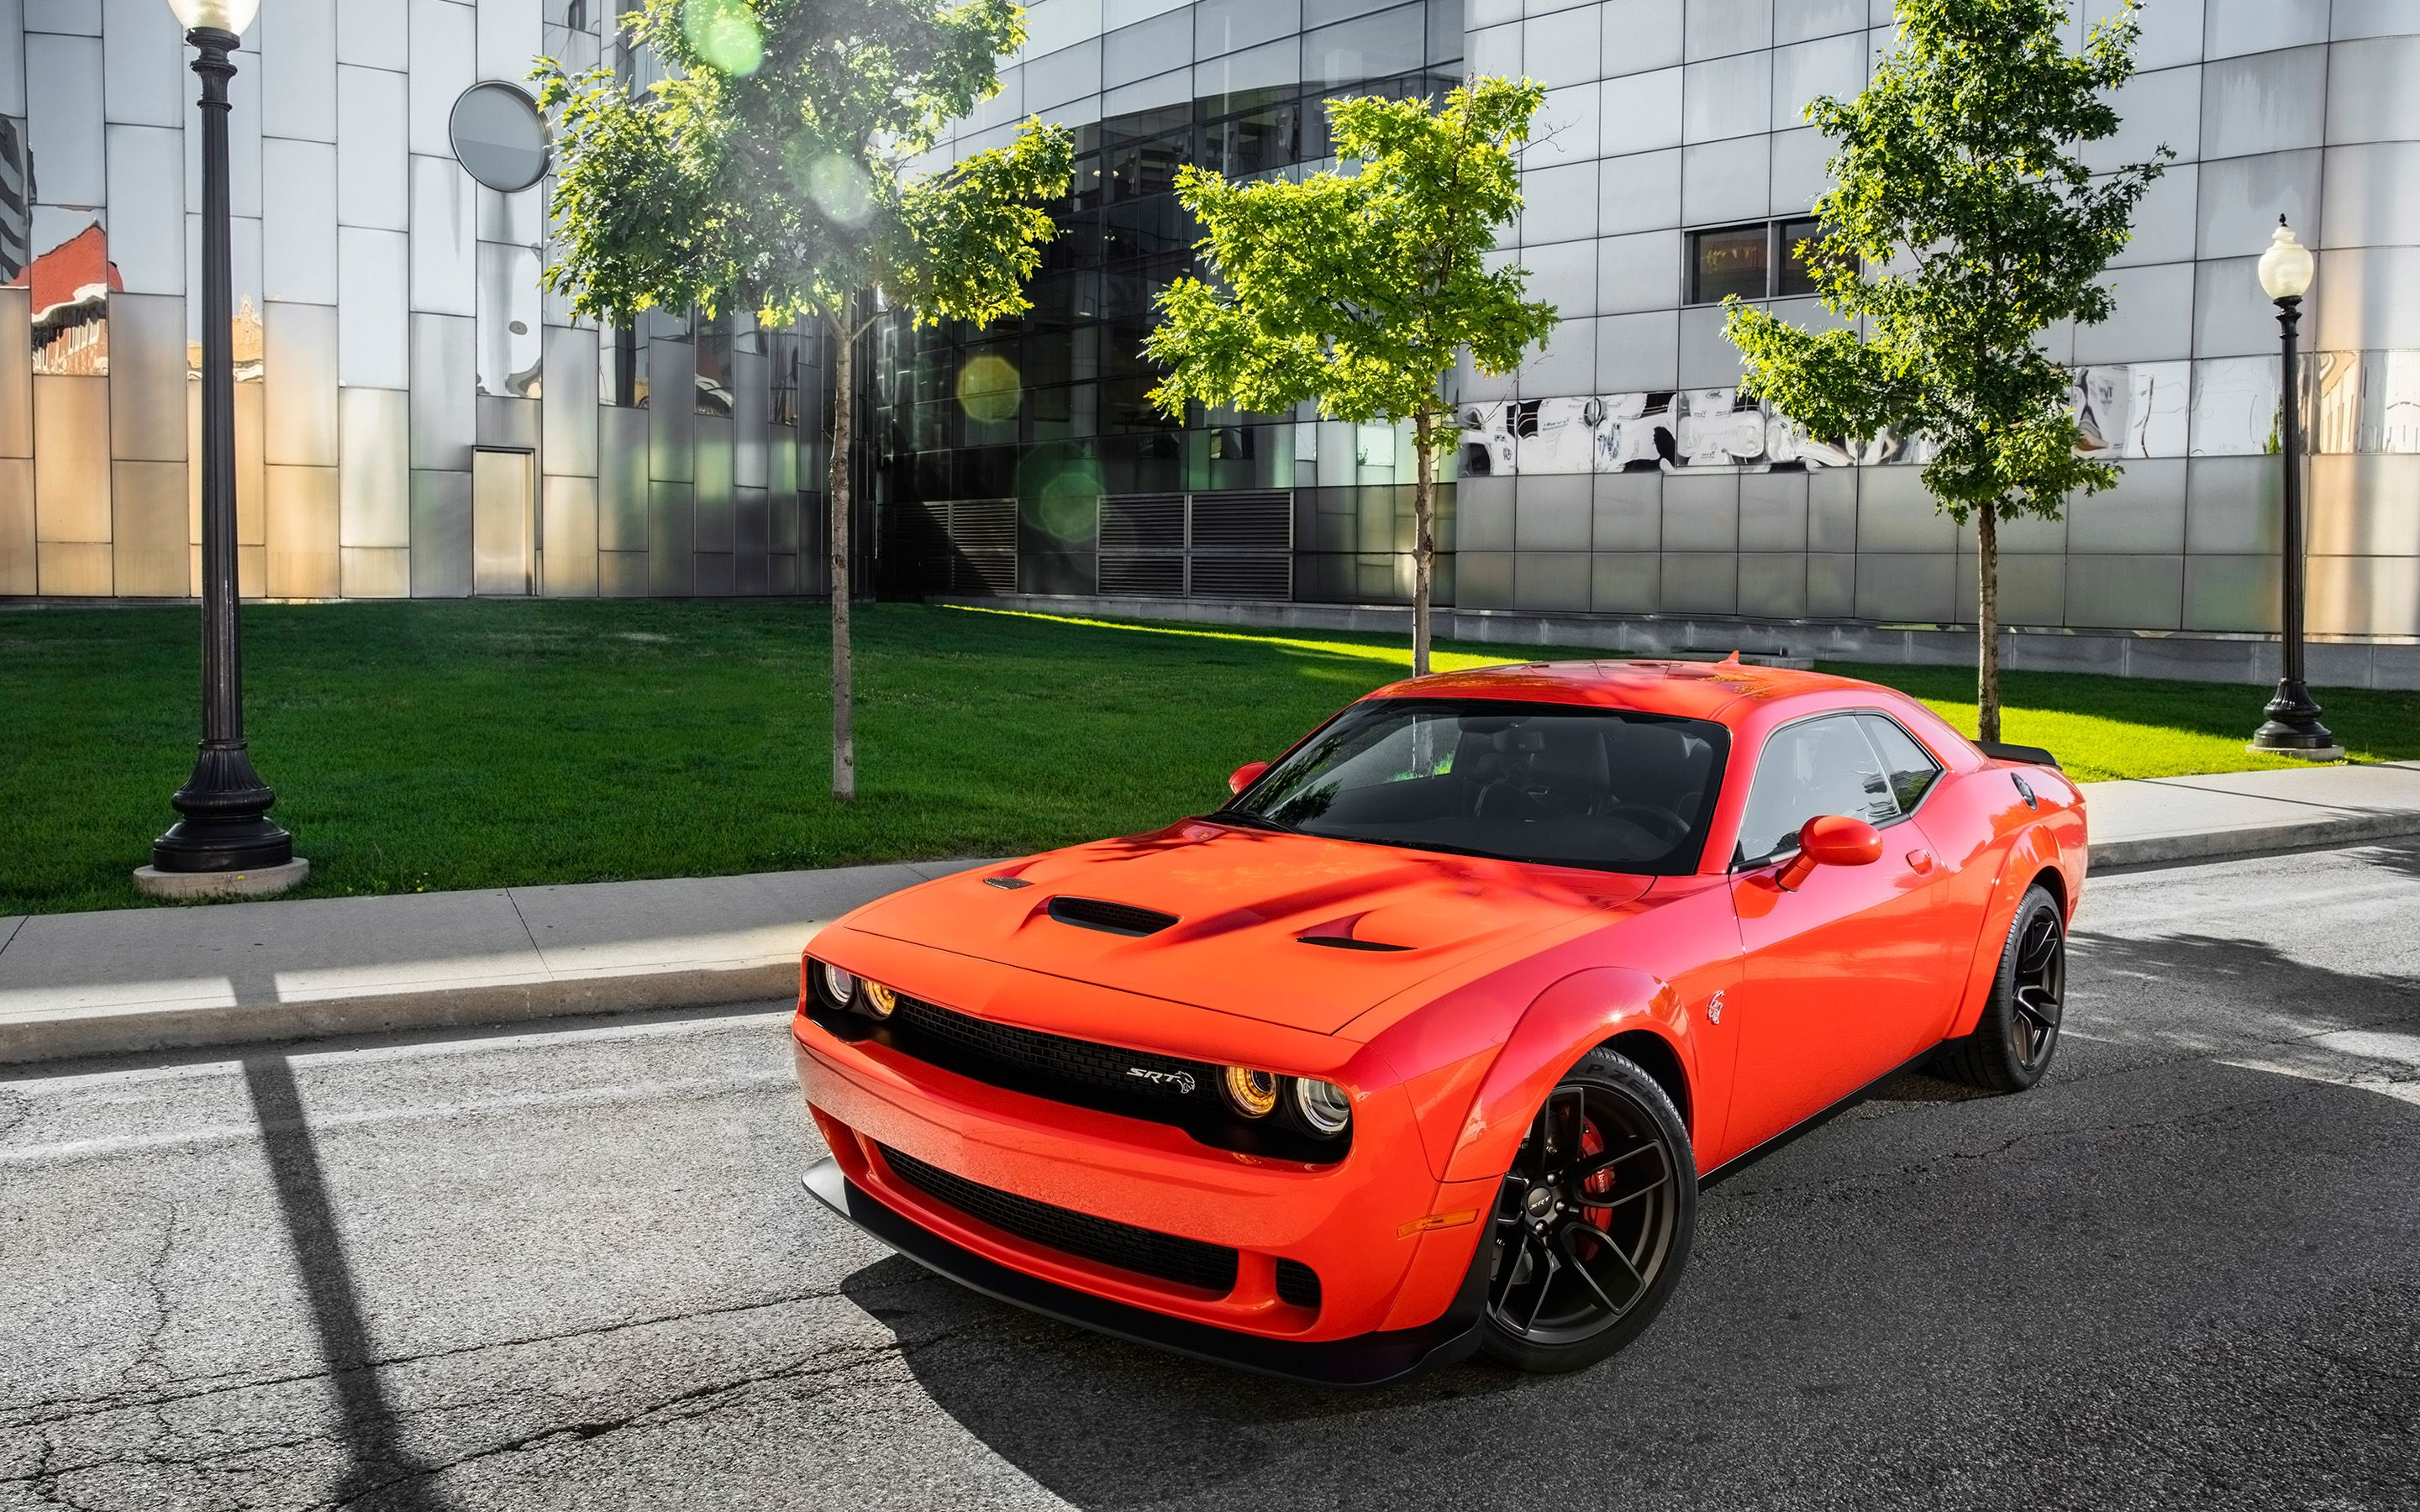 2018 Dodge Challenger Srt Hellcat Widebody Yava